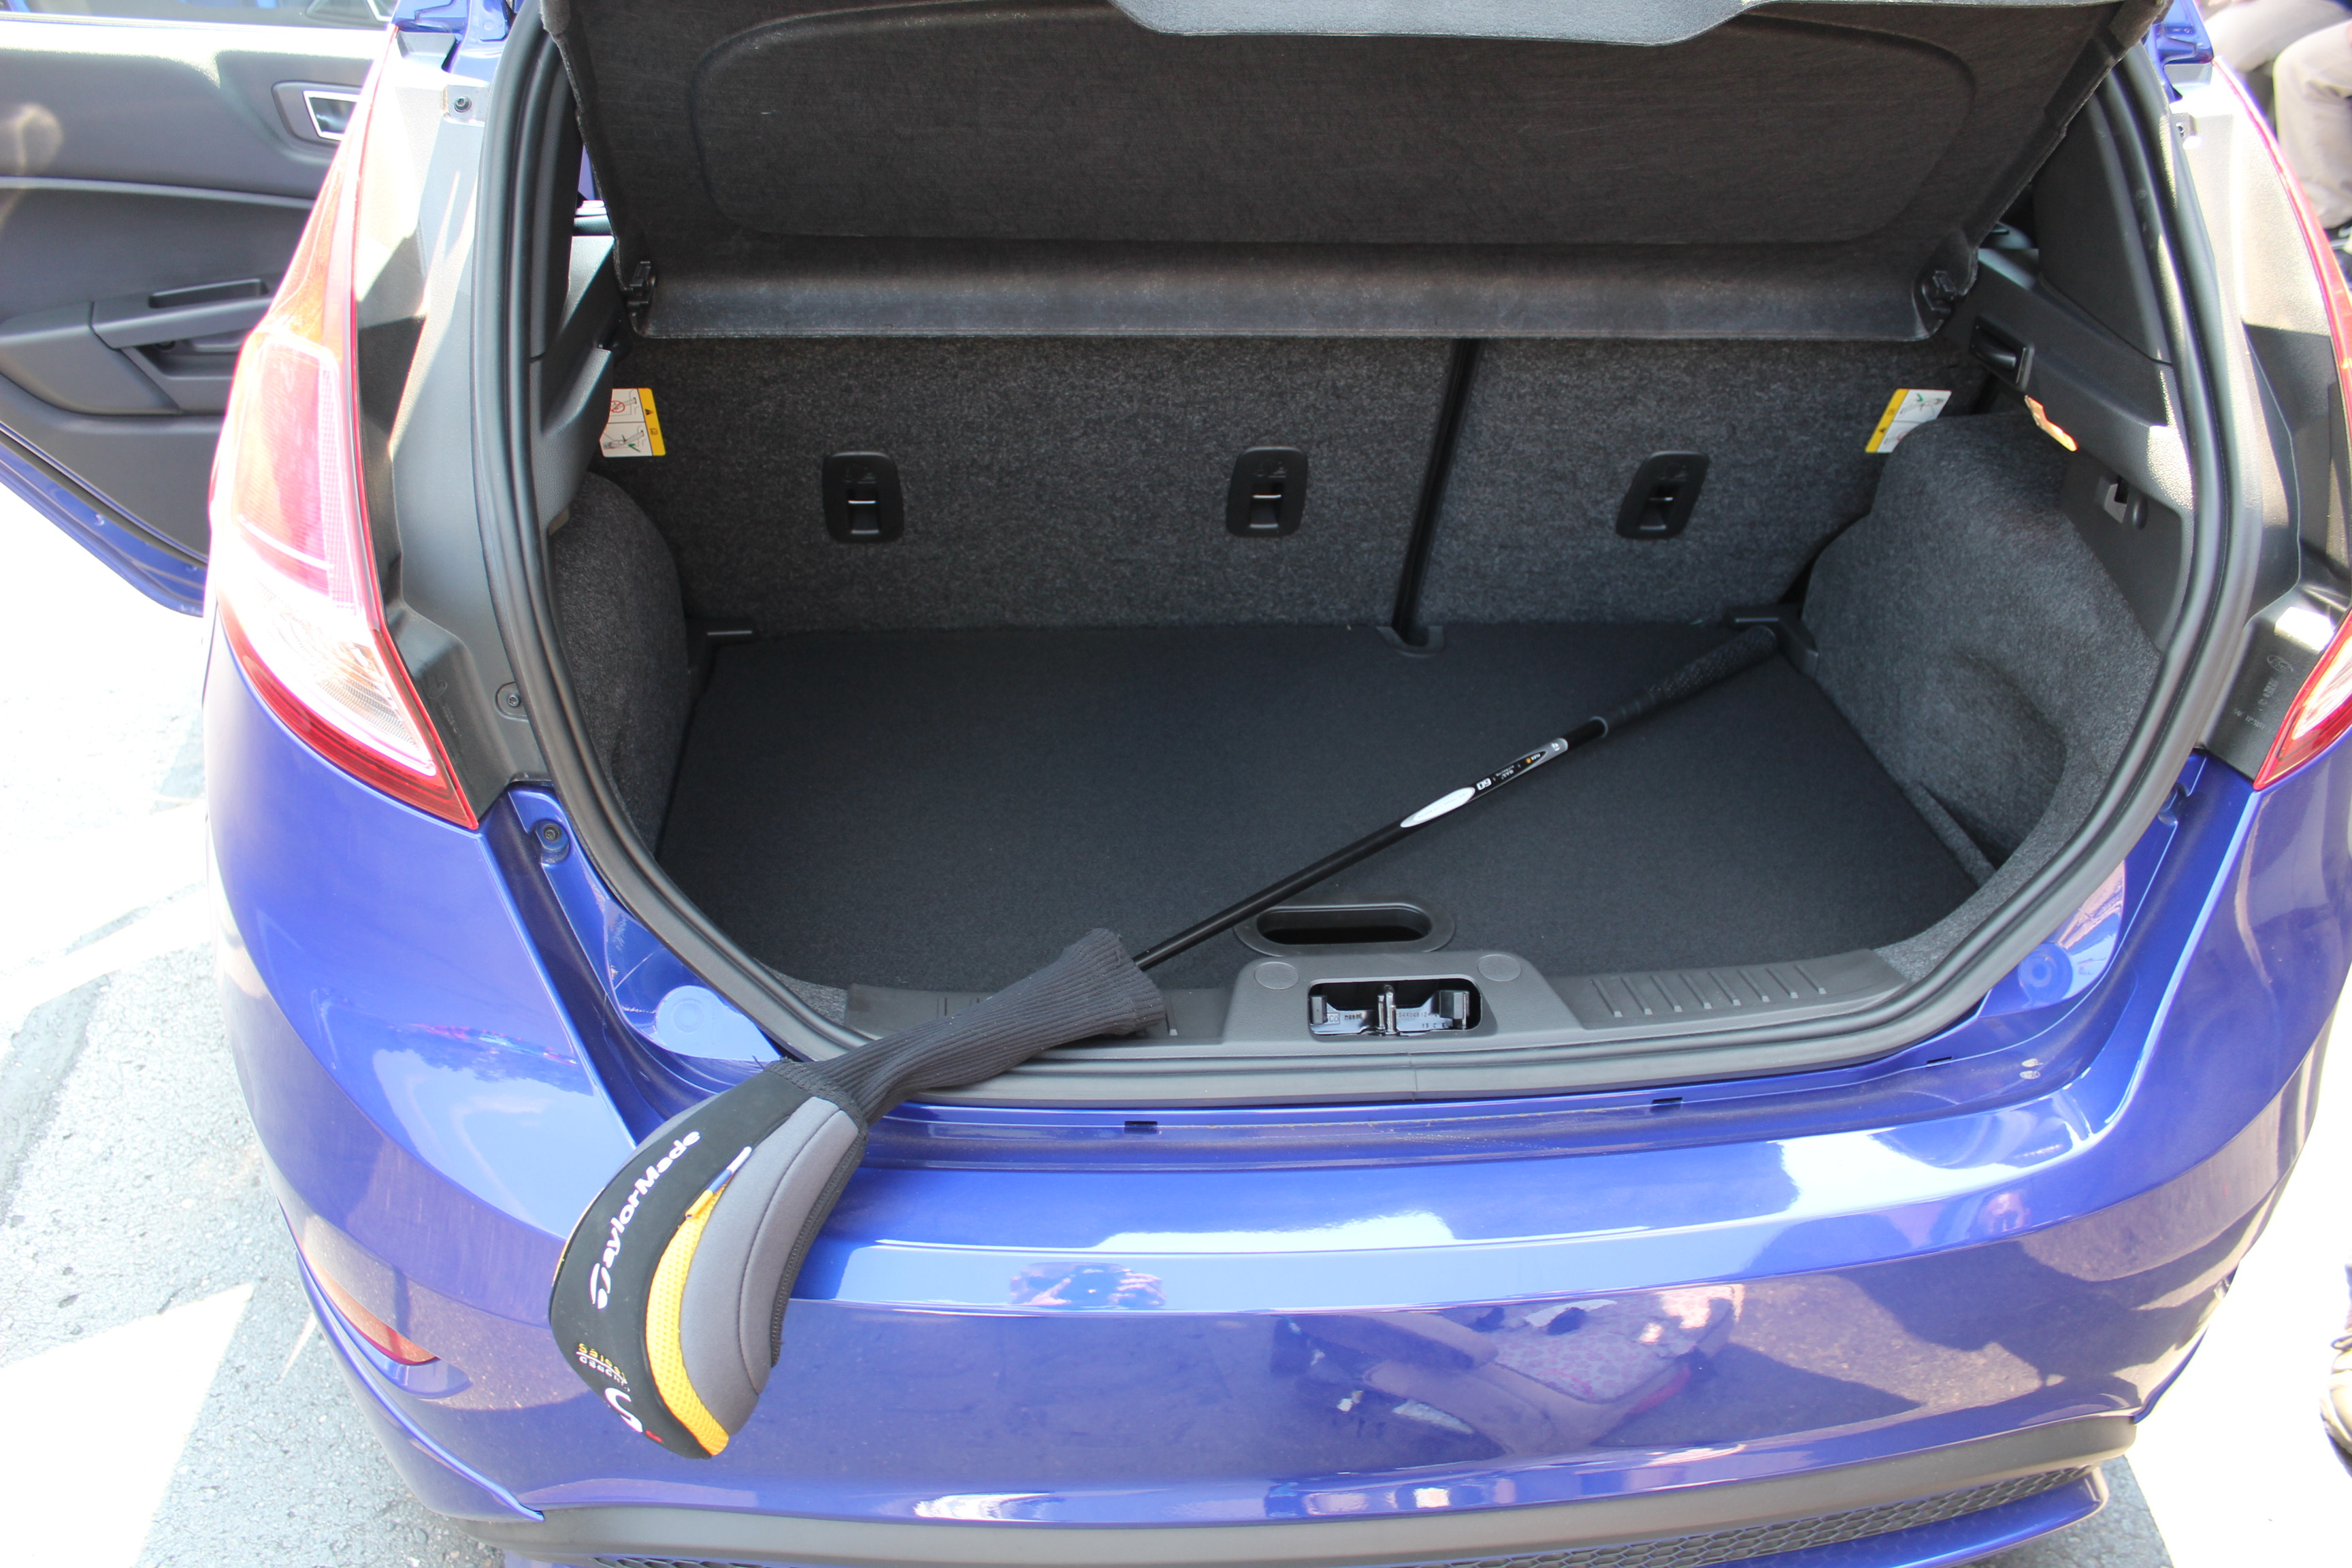 How Will Golf Clubs Fit in a Ford Focus?